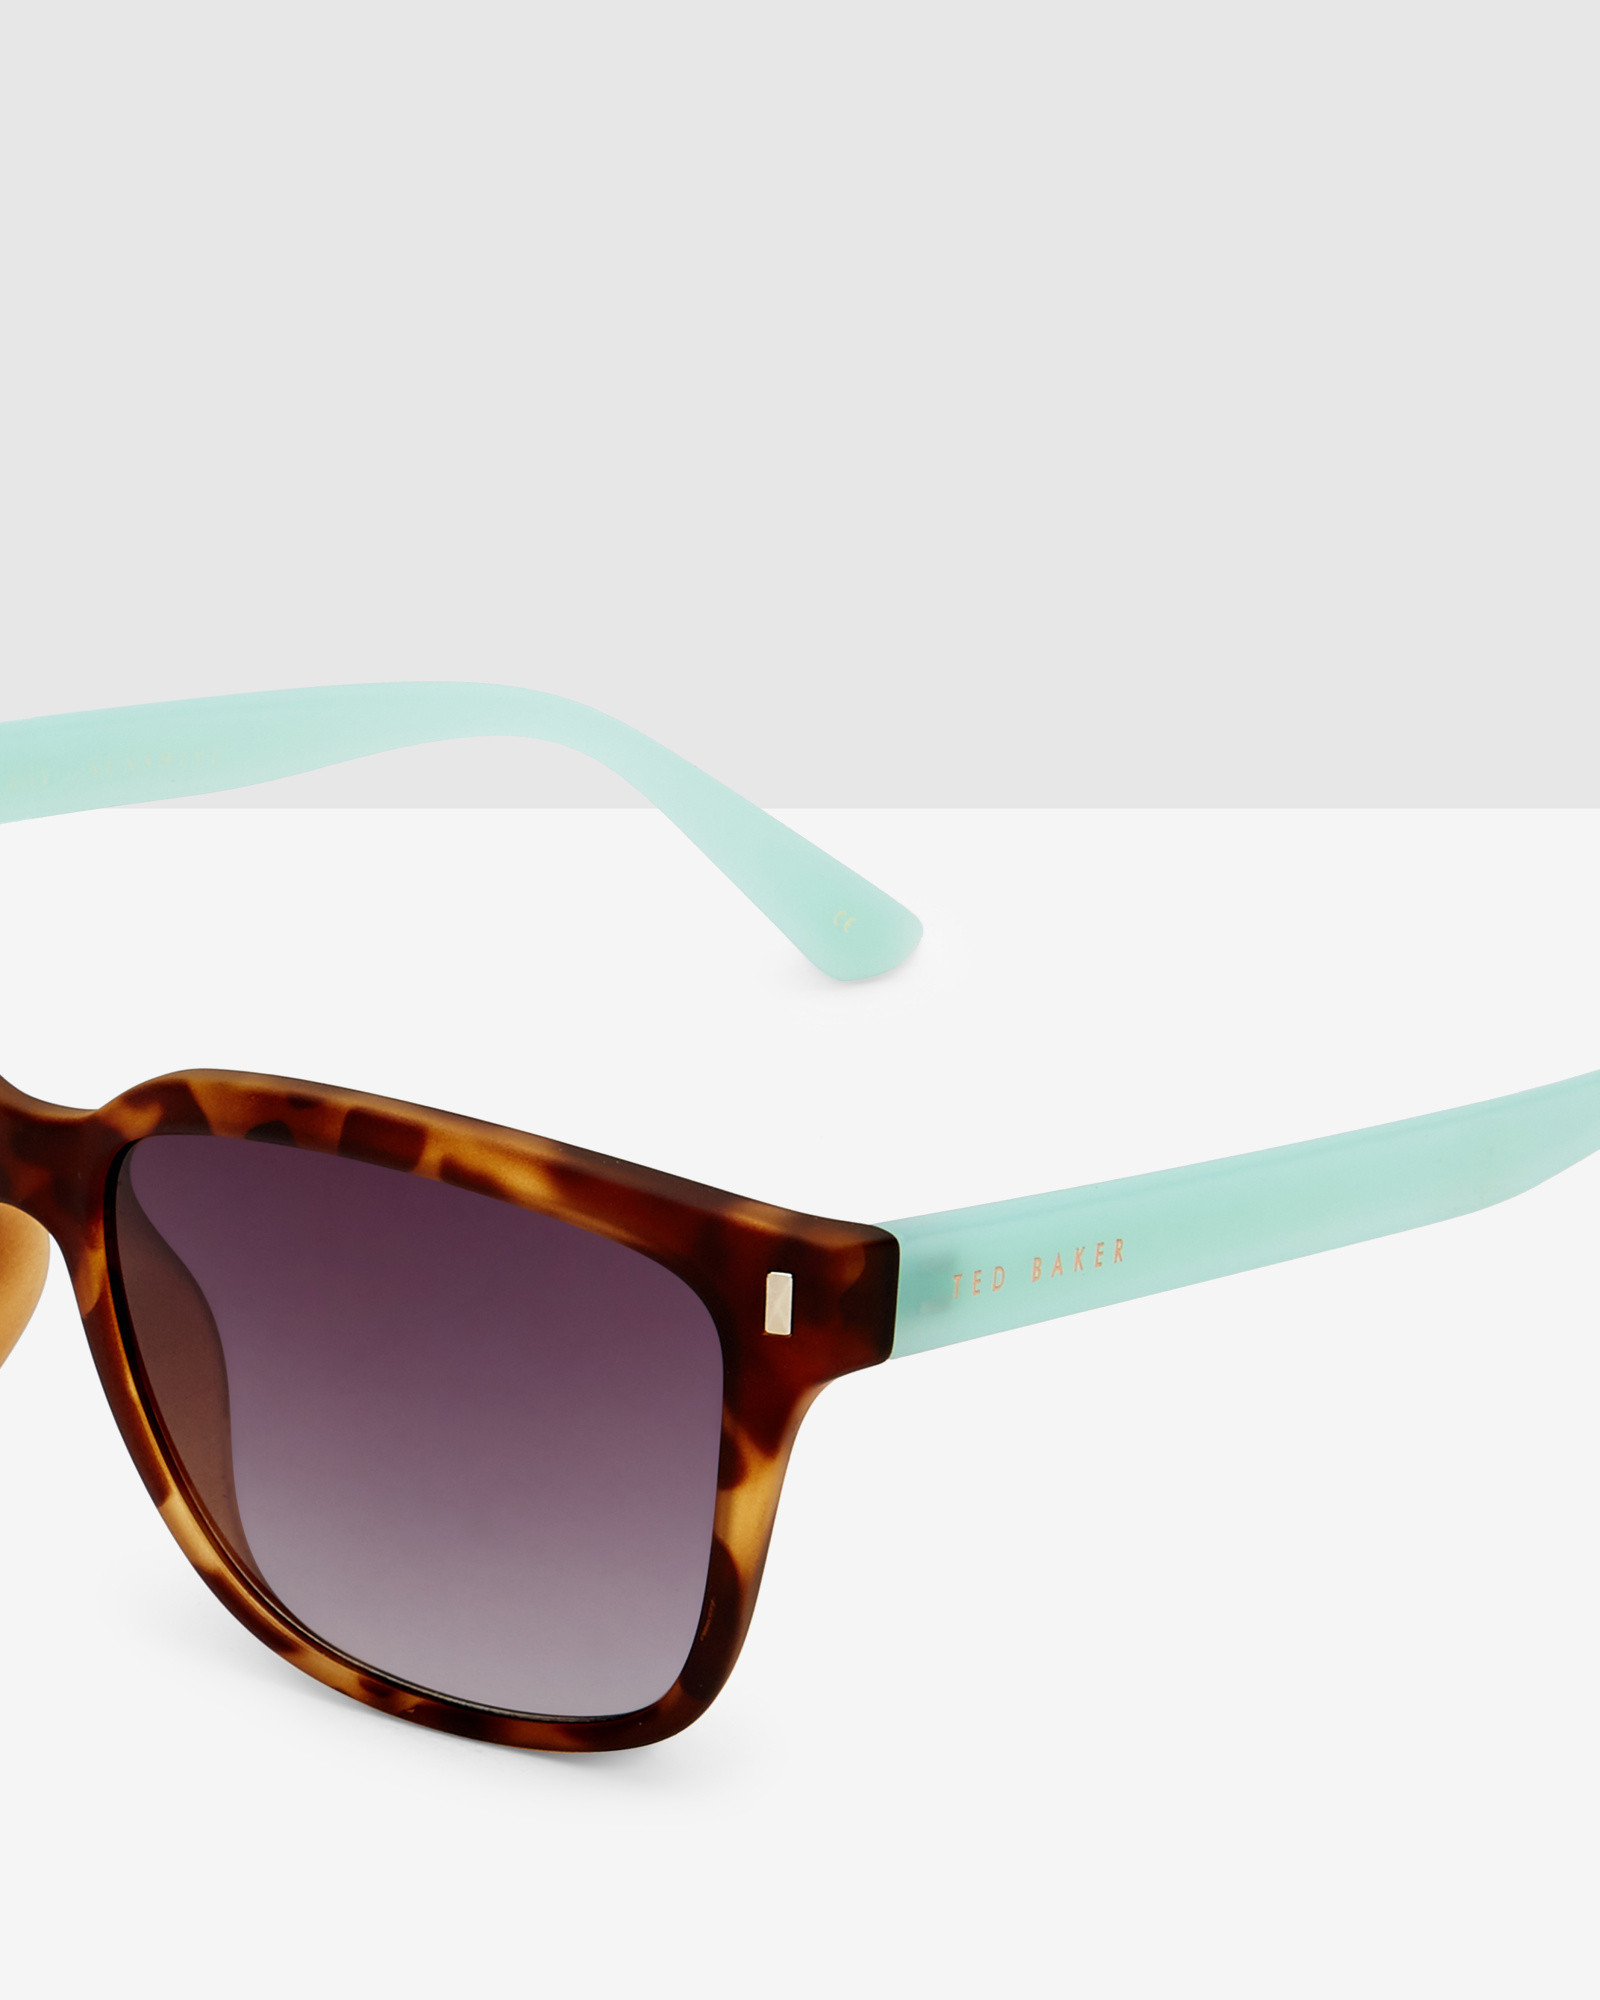 Metal Arm Sunglasses Ted Baker